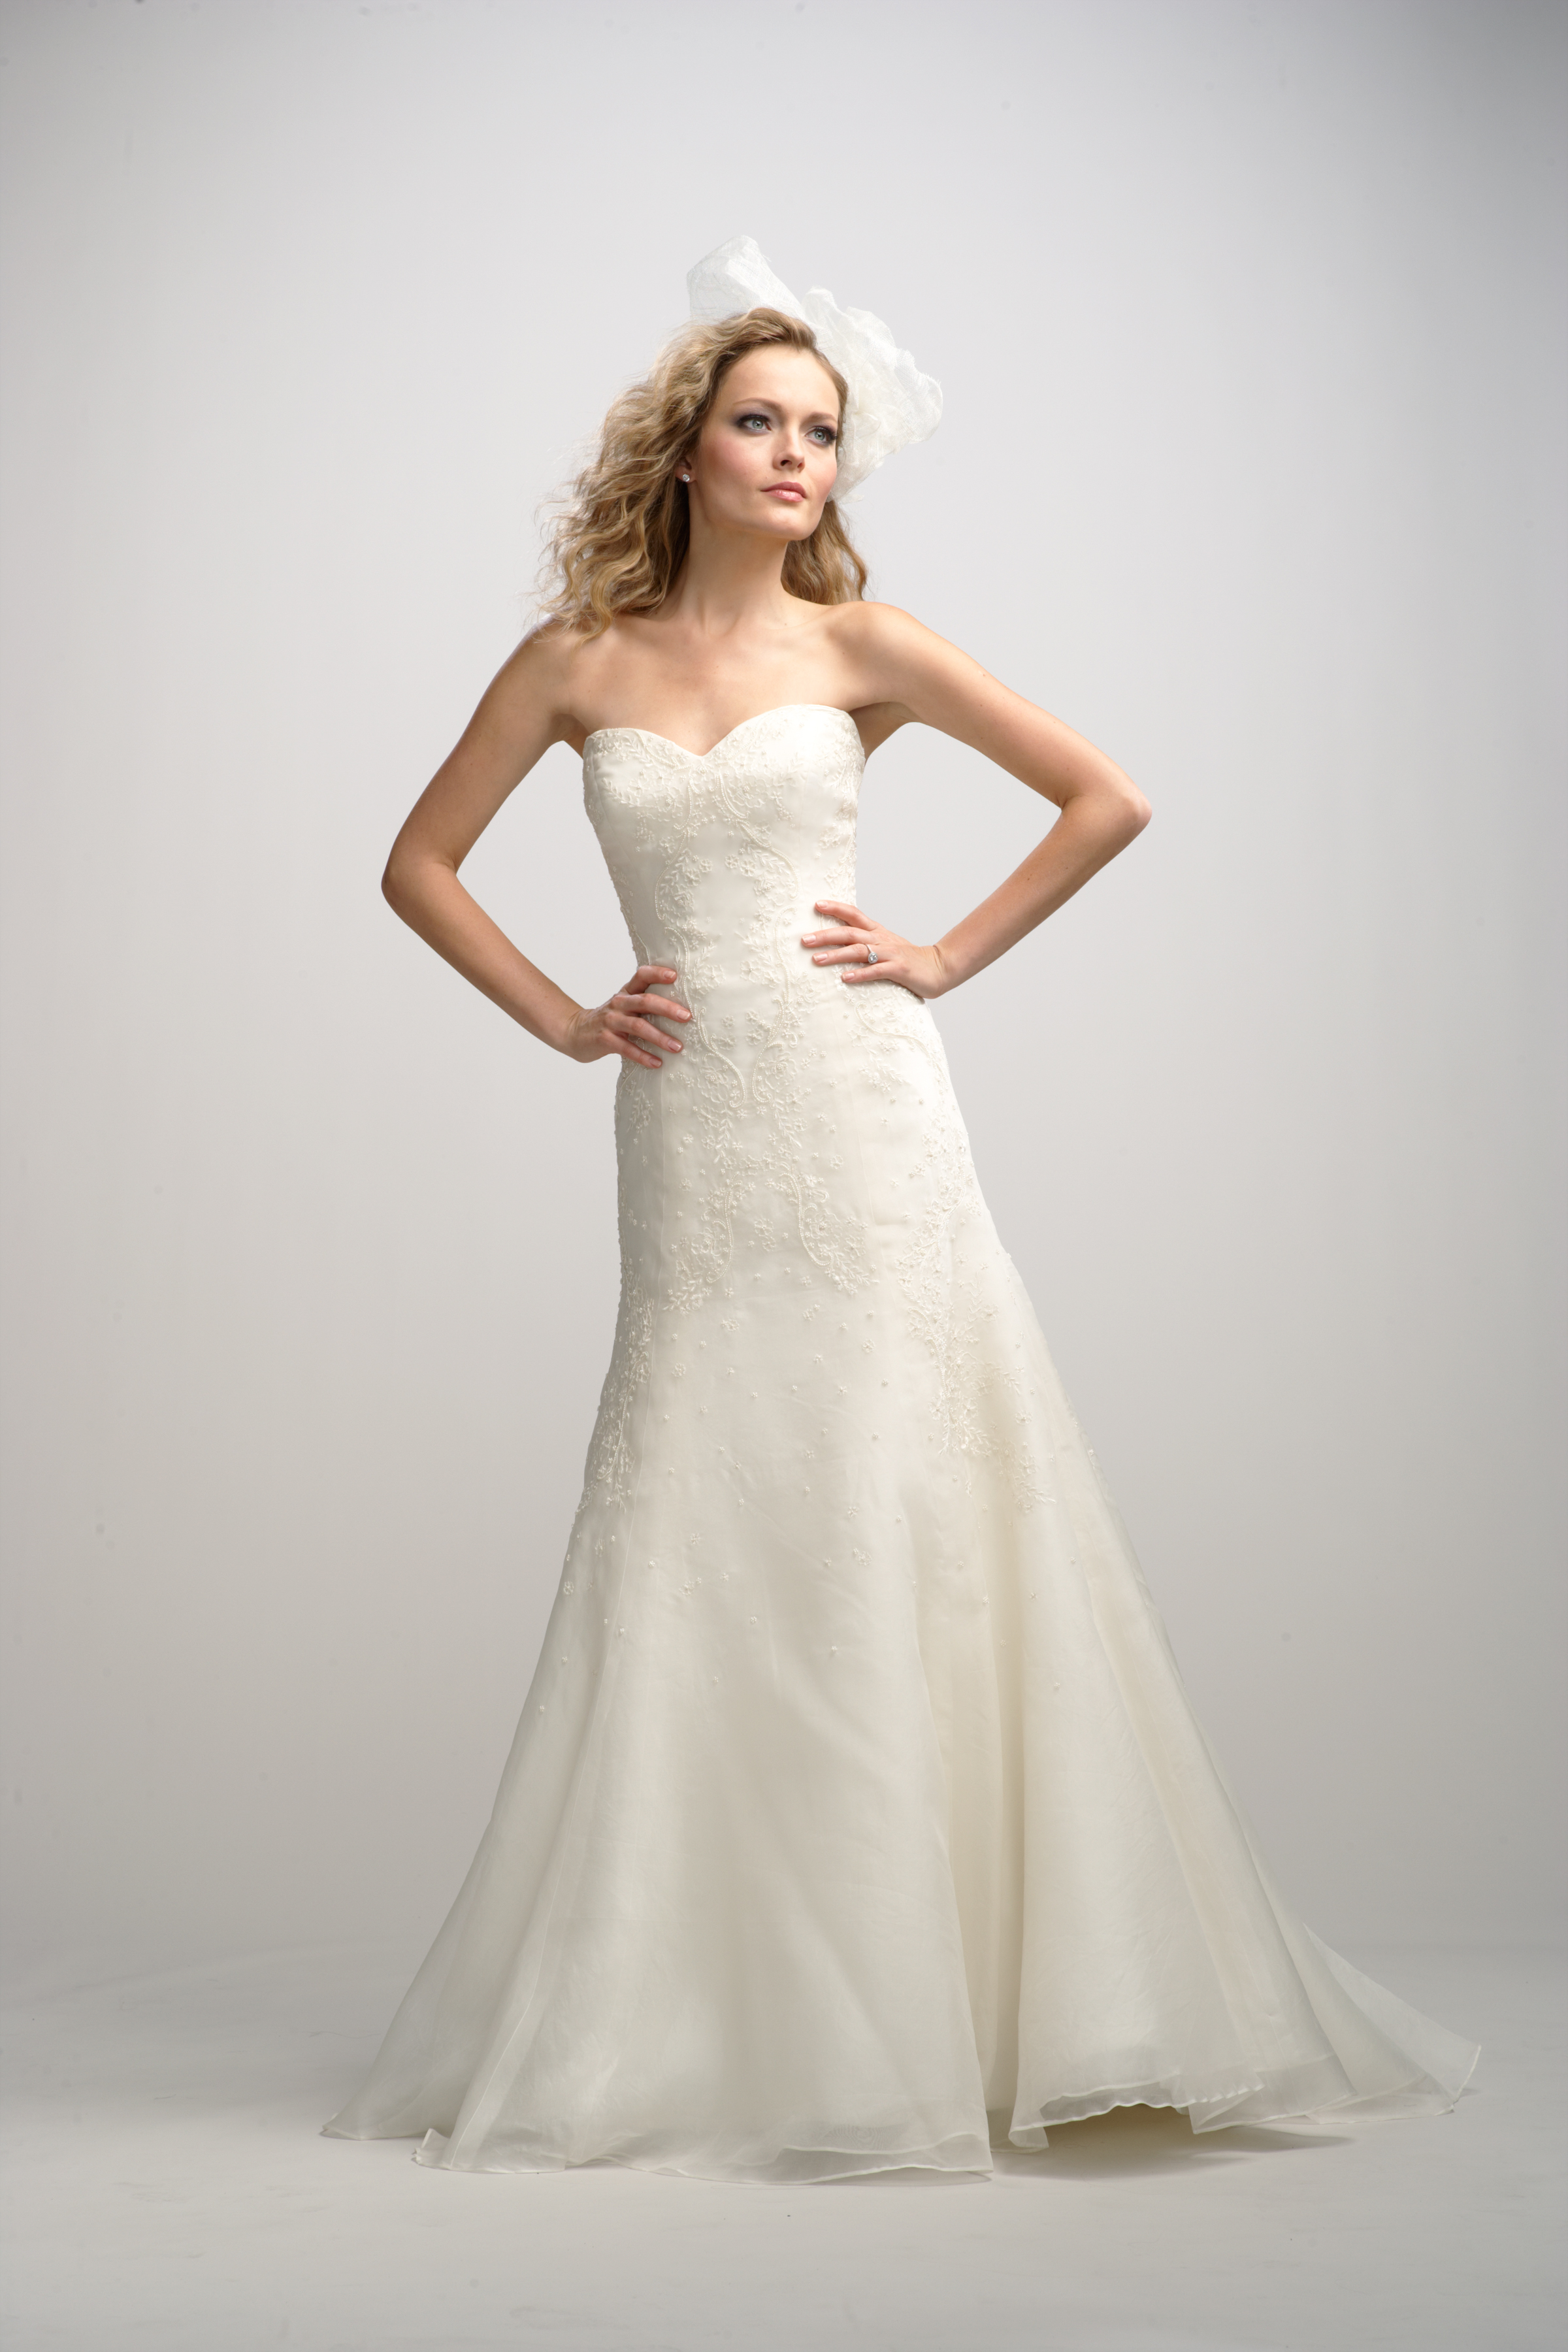 Fall-2012-wedding-dress-watters-bridal-gown-11.original.original